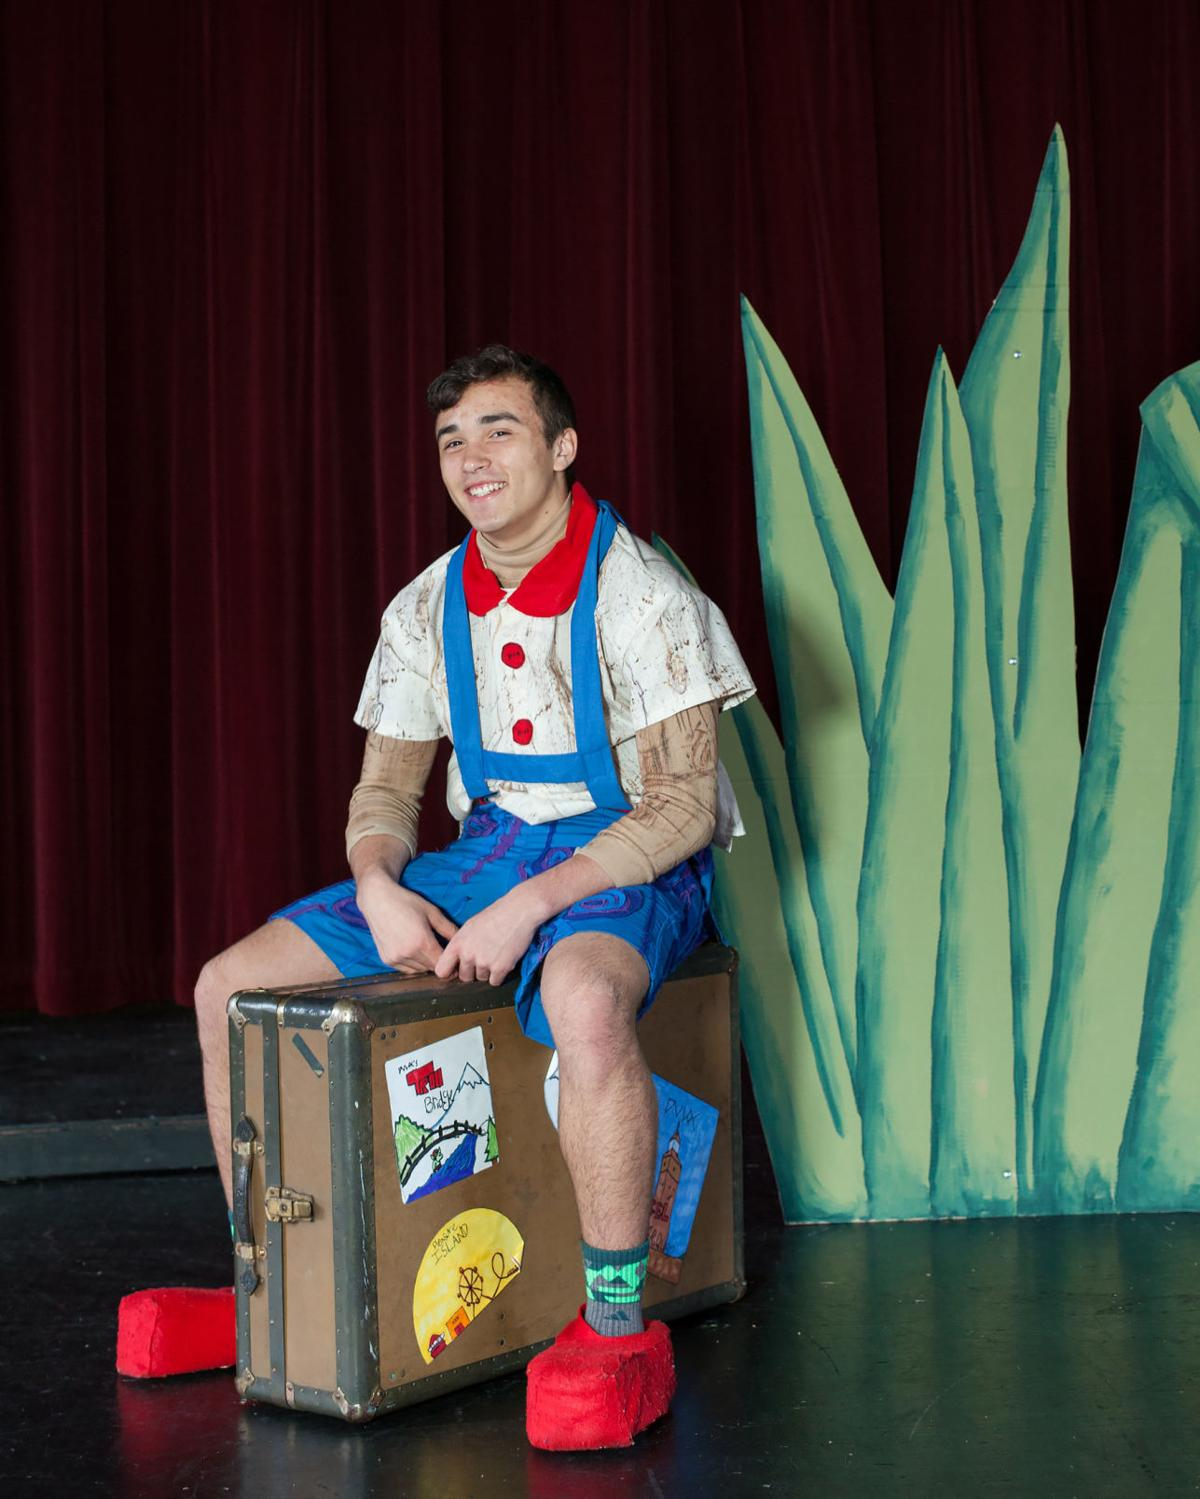 'Shrek the Musical'  America's favorite ogre coming to IHS